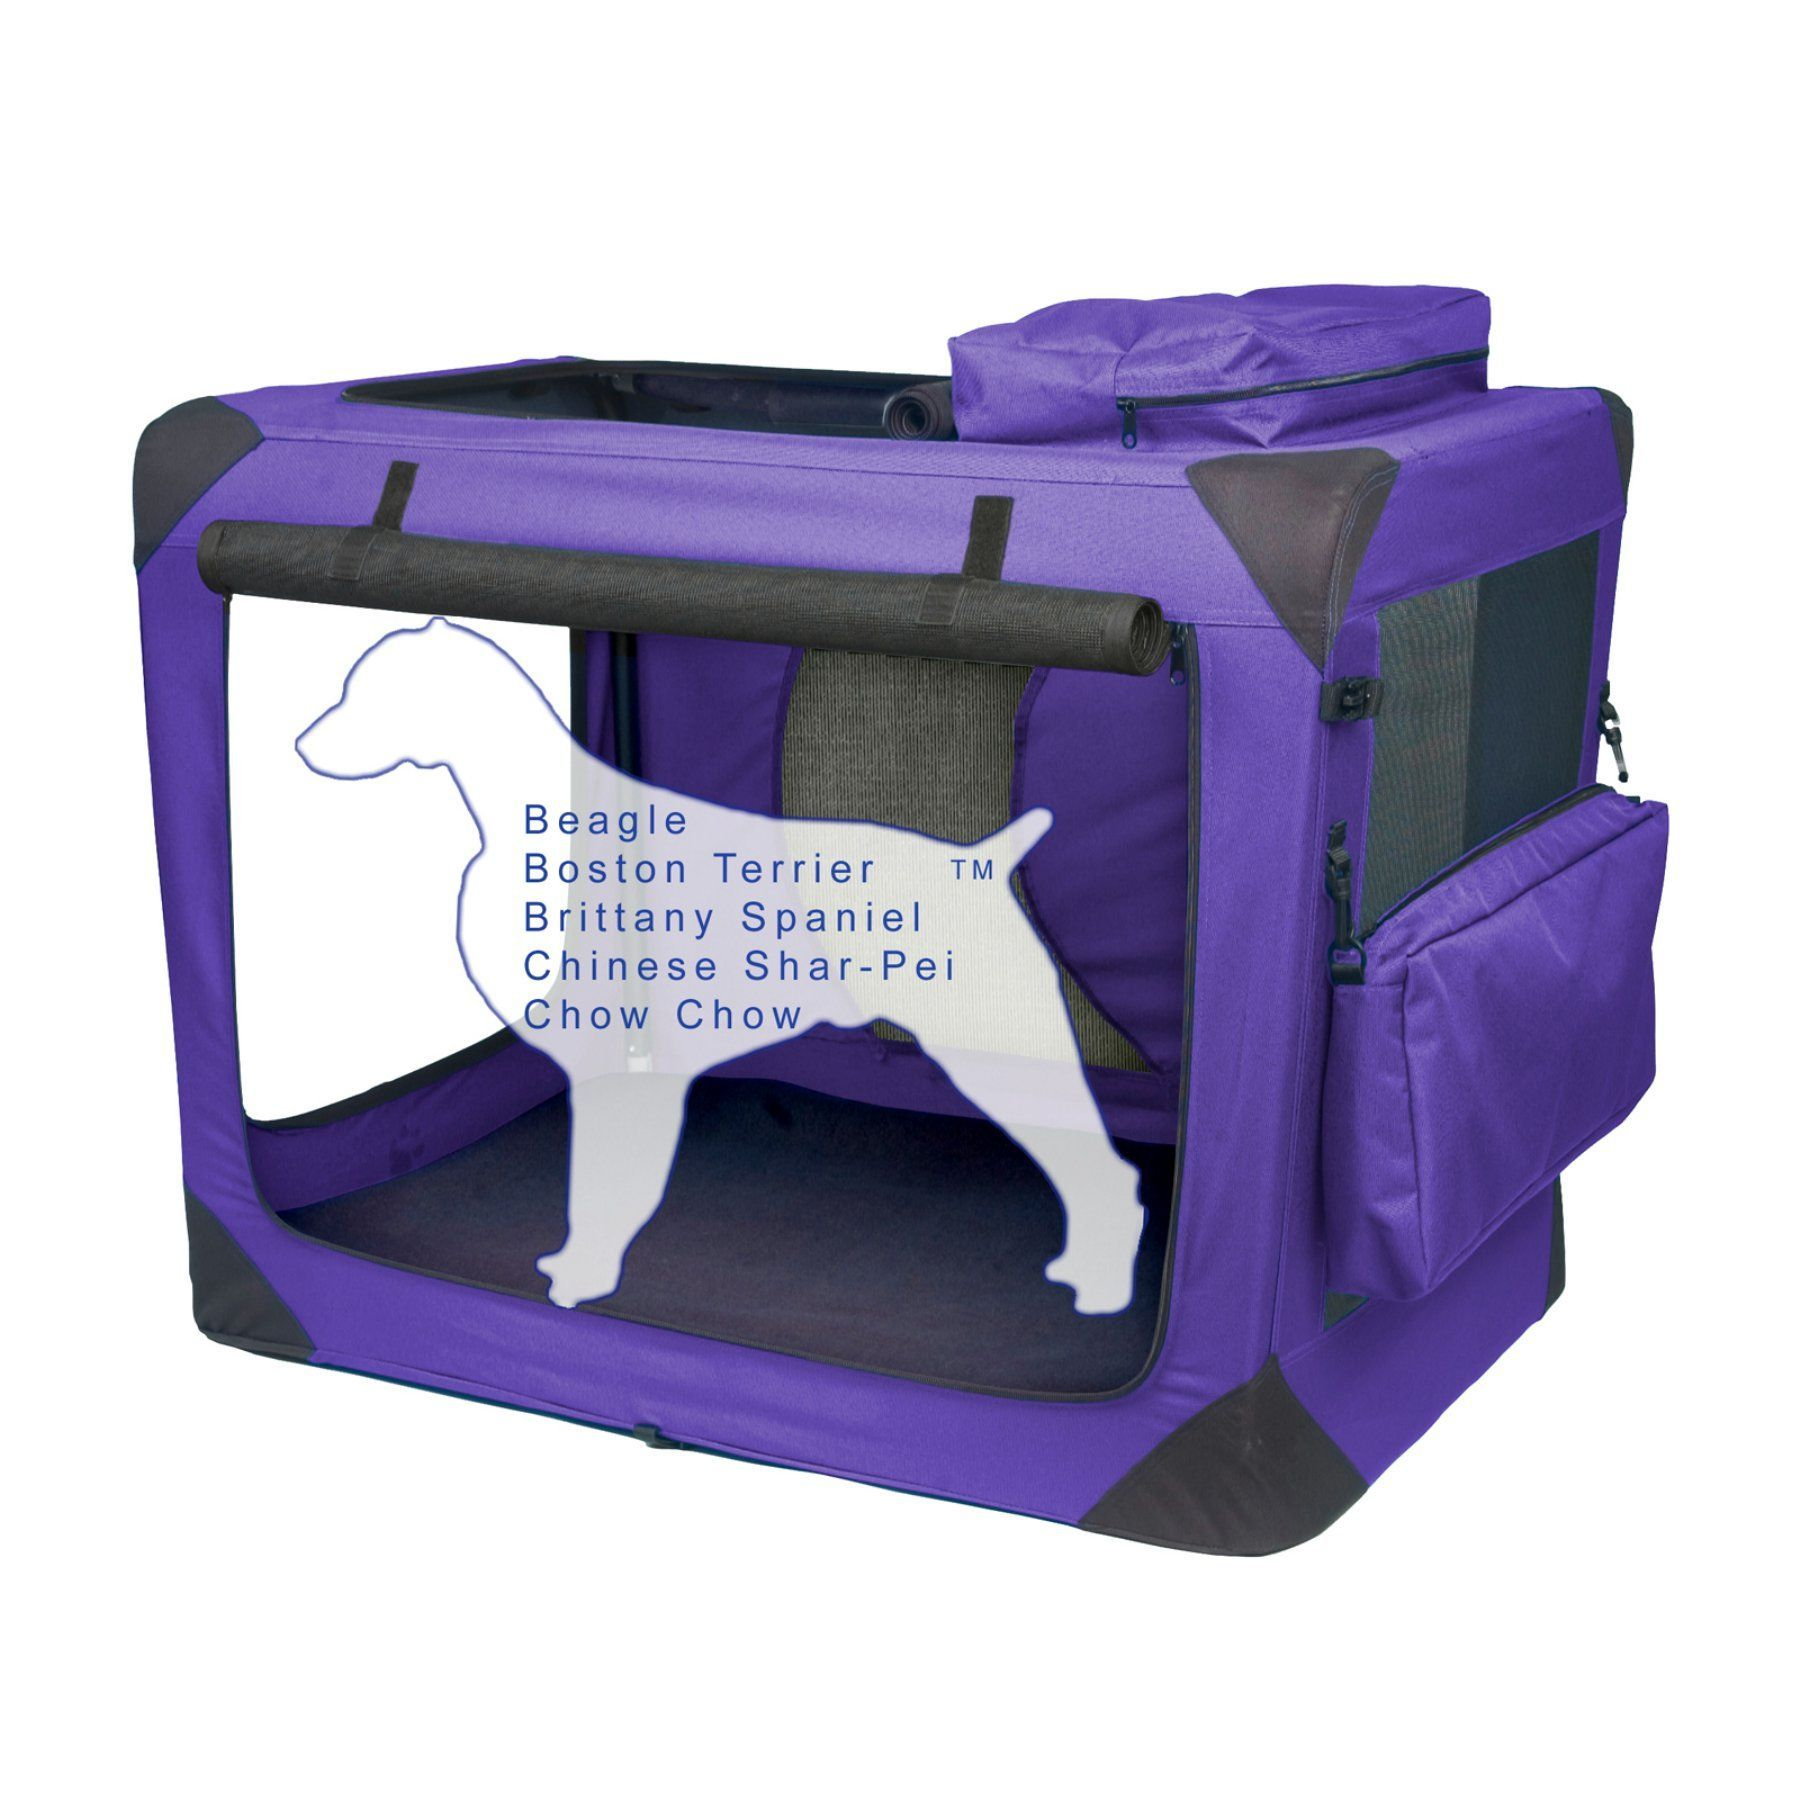 Pet Gear Portable Soft Crate30 inchesLavender PG5530LV